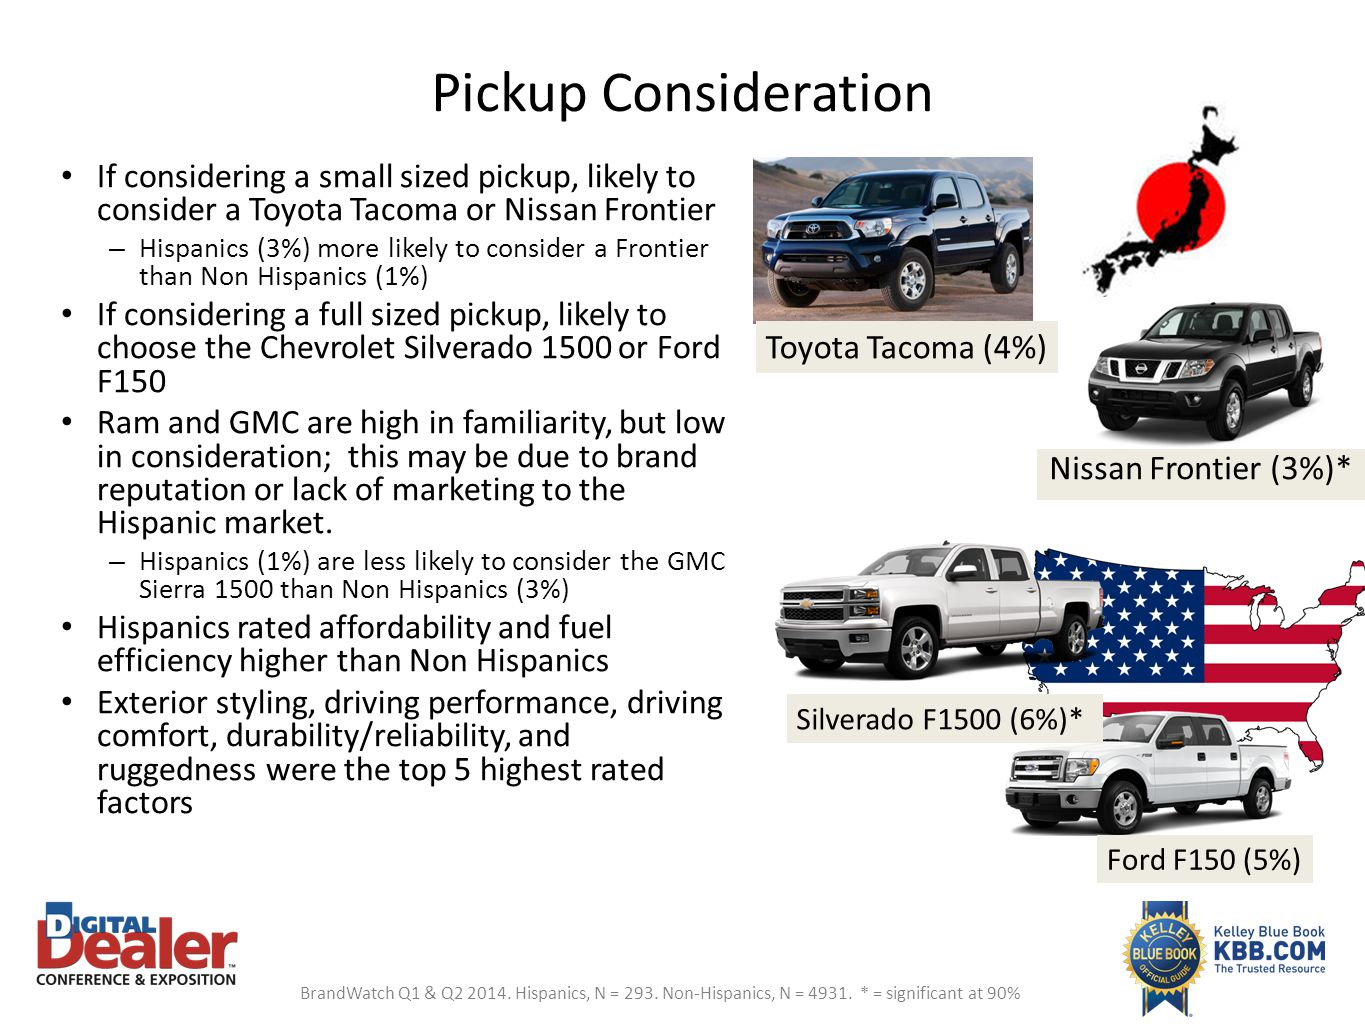 Pickup Consideration If considering a small sized pickup, likely to consider a Toyota Tacoma or Nissan Frontier.